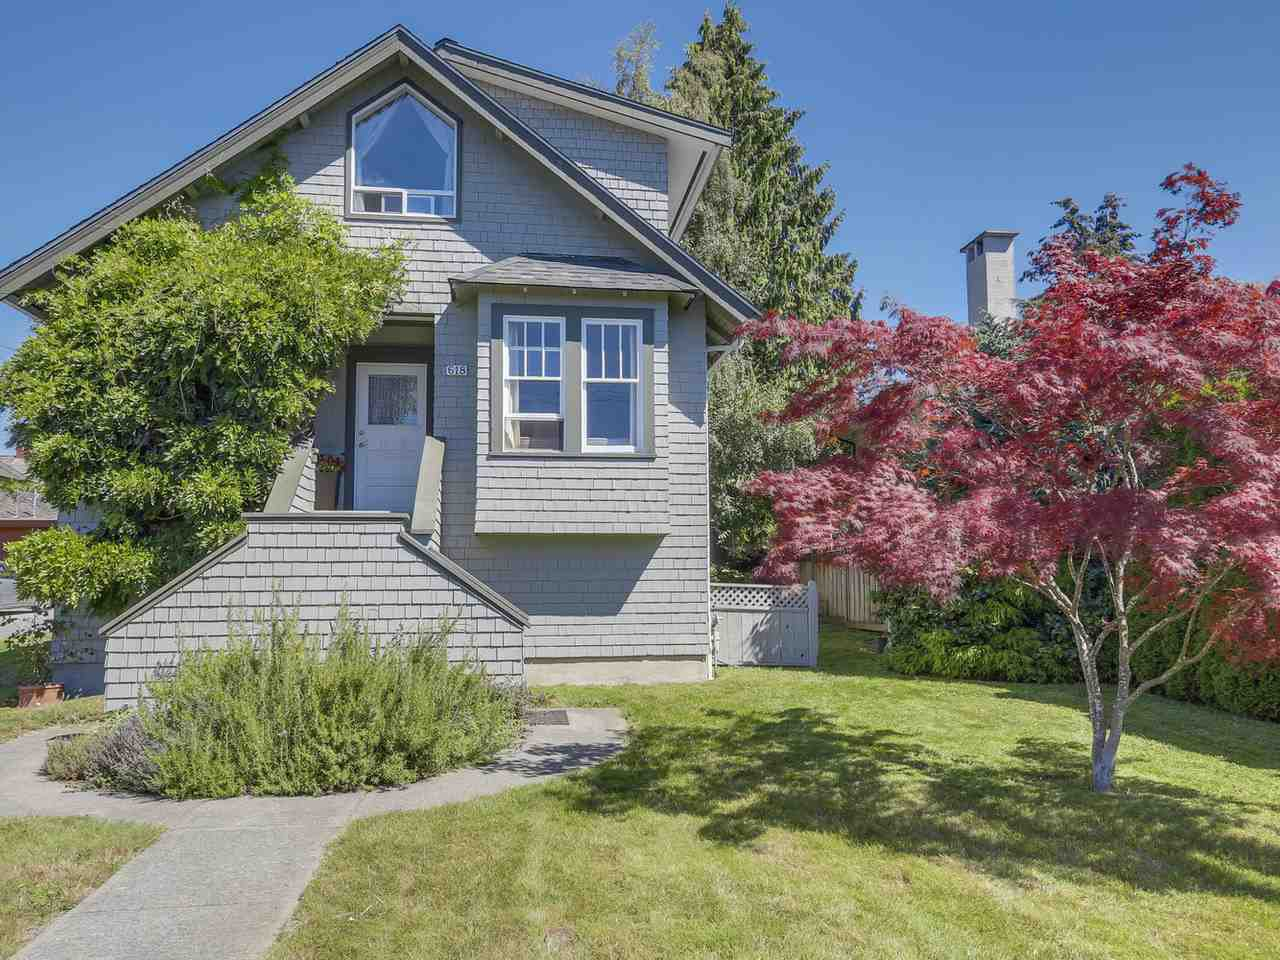 """Main Photo: 618 E 11TH Street in North Vancouver: Boulevard House for sale in """"Grand Boulevard"""" : MLS®# R2098623"""